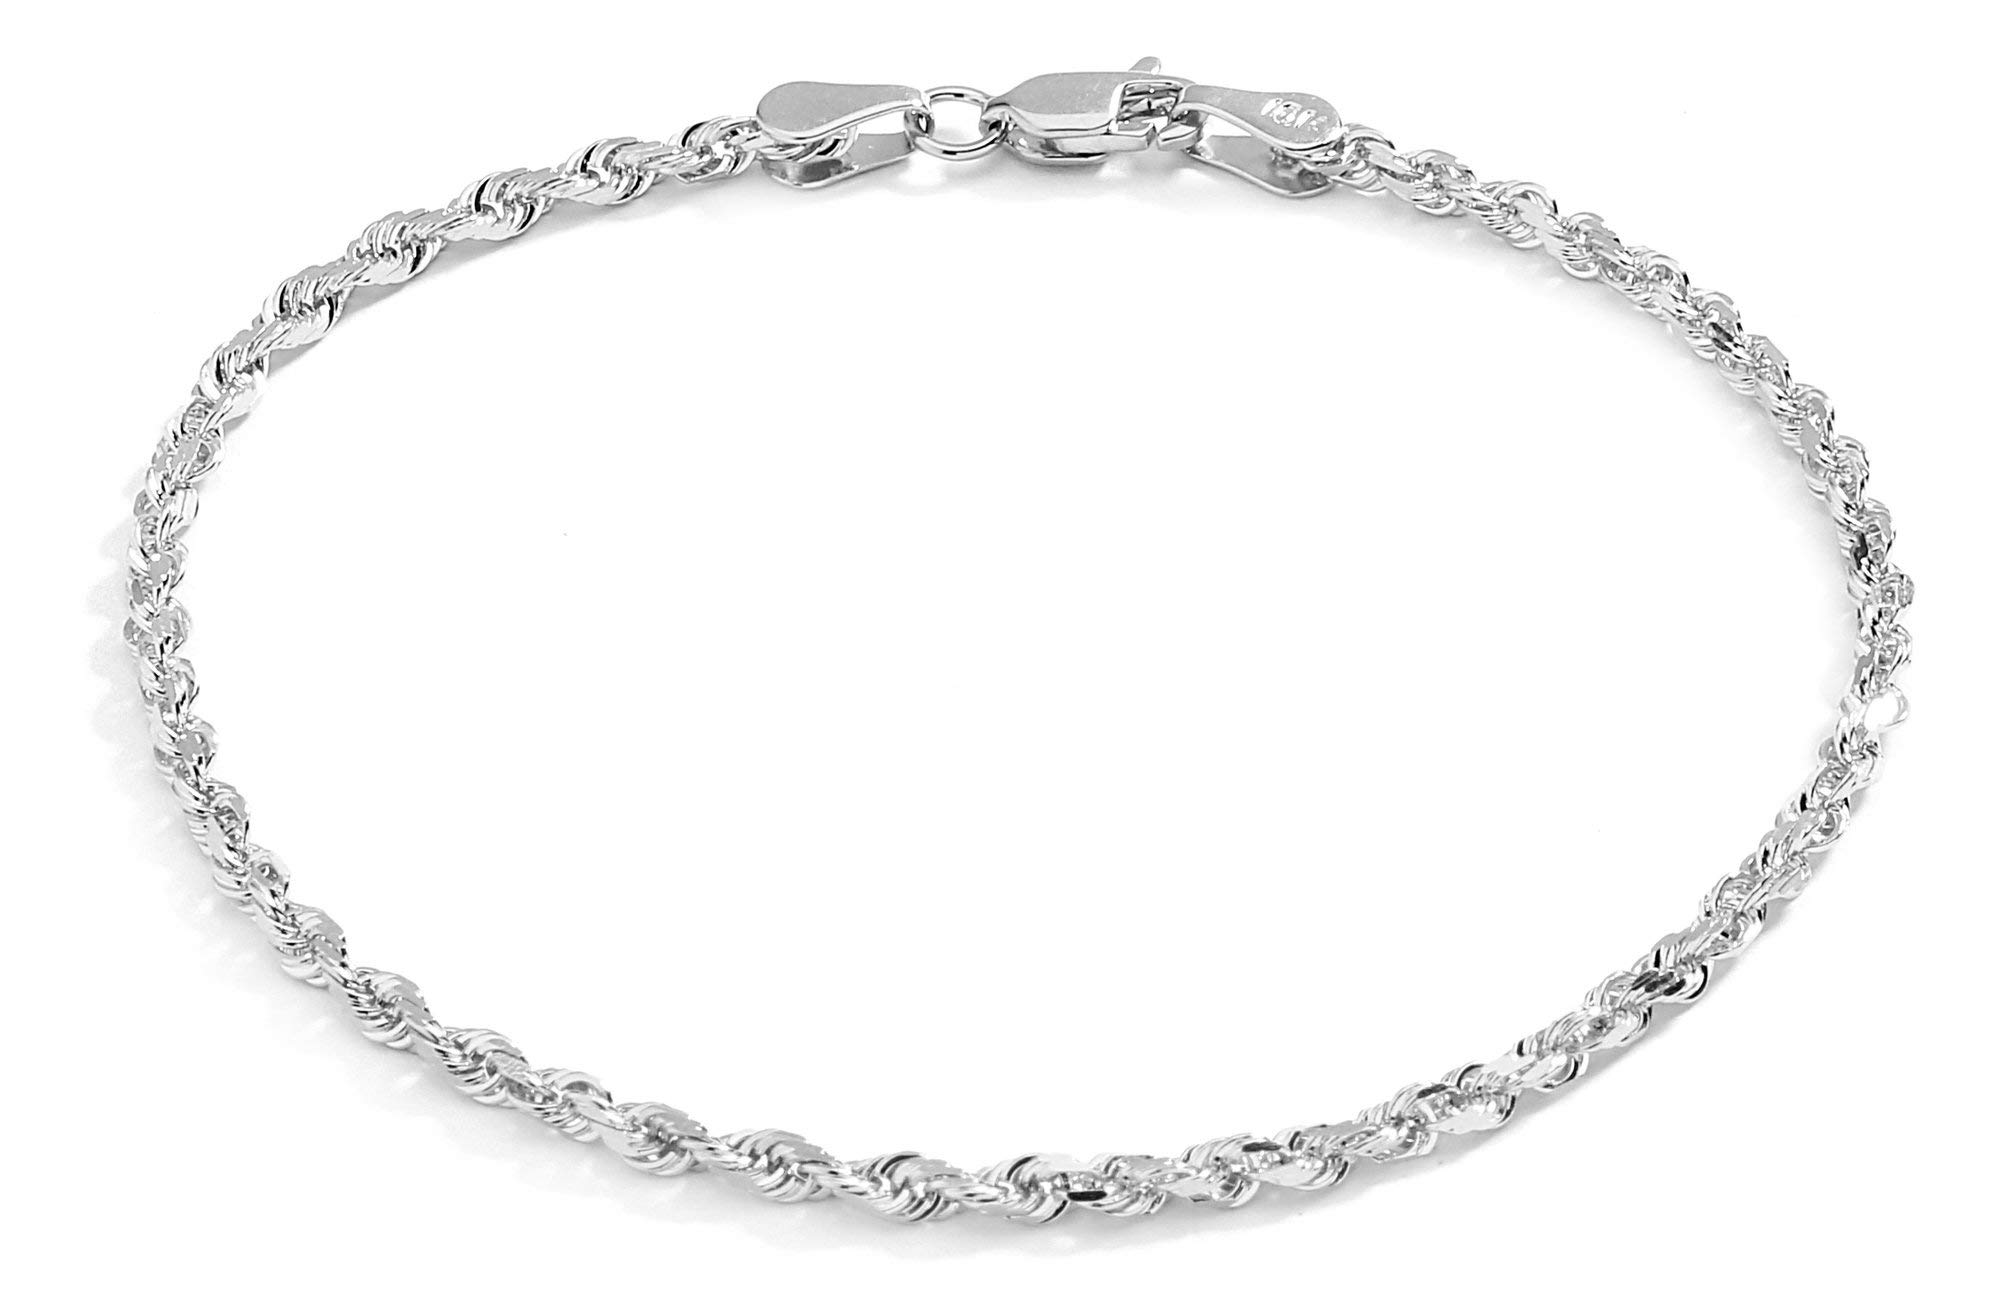 Pori Jewelers 10K Solid Gold 2.5mm Diamond Cut Rope Chain Anklet for Women - 10'' (White)